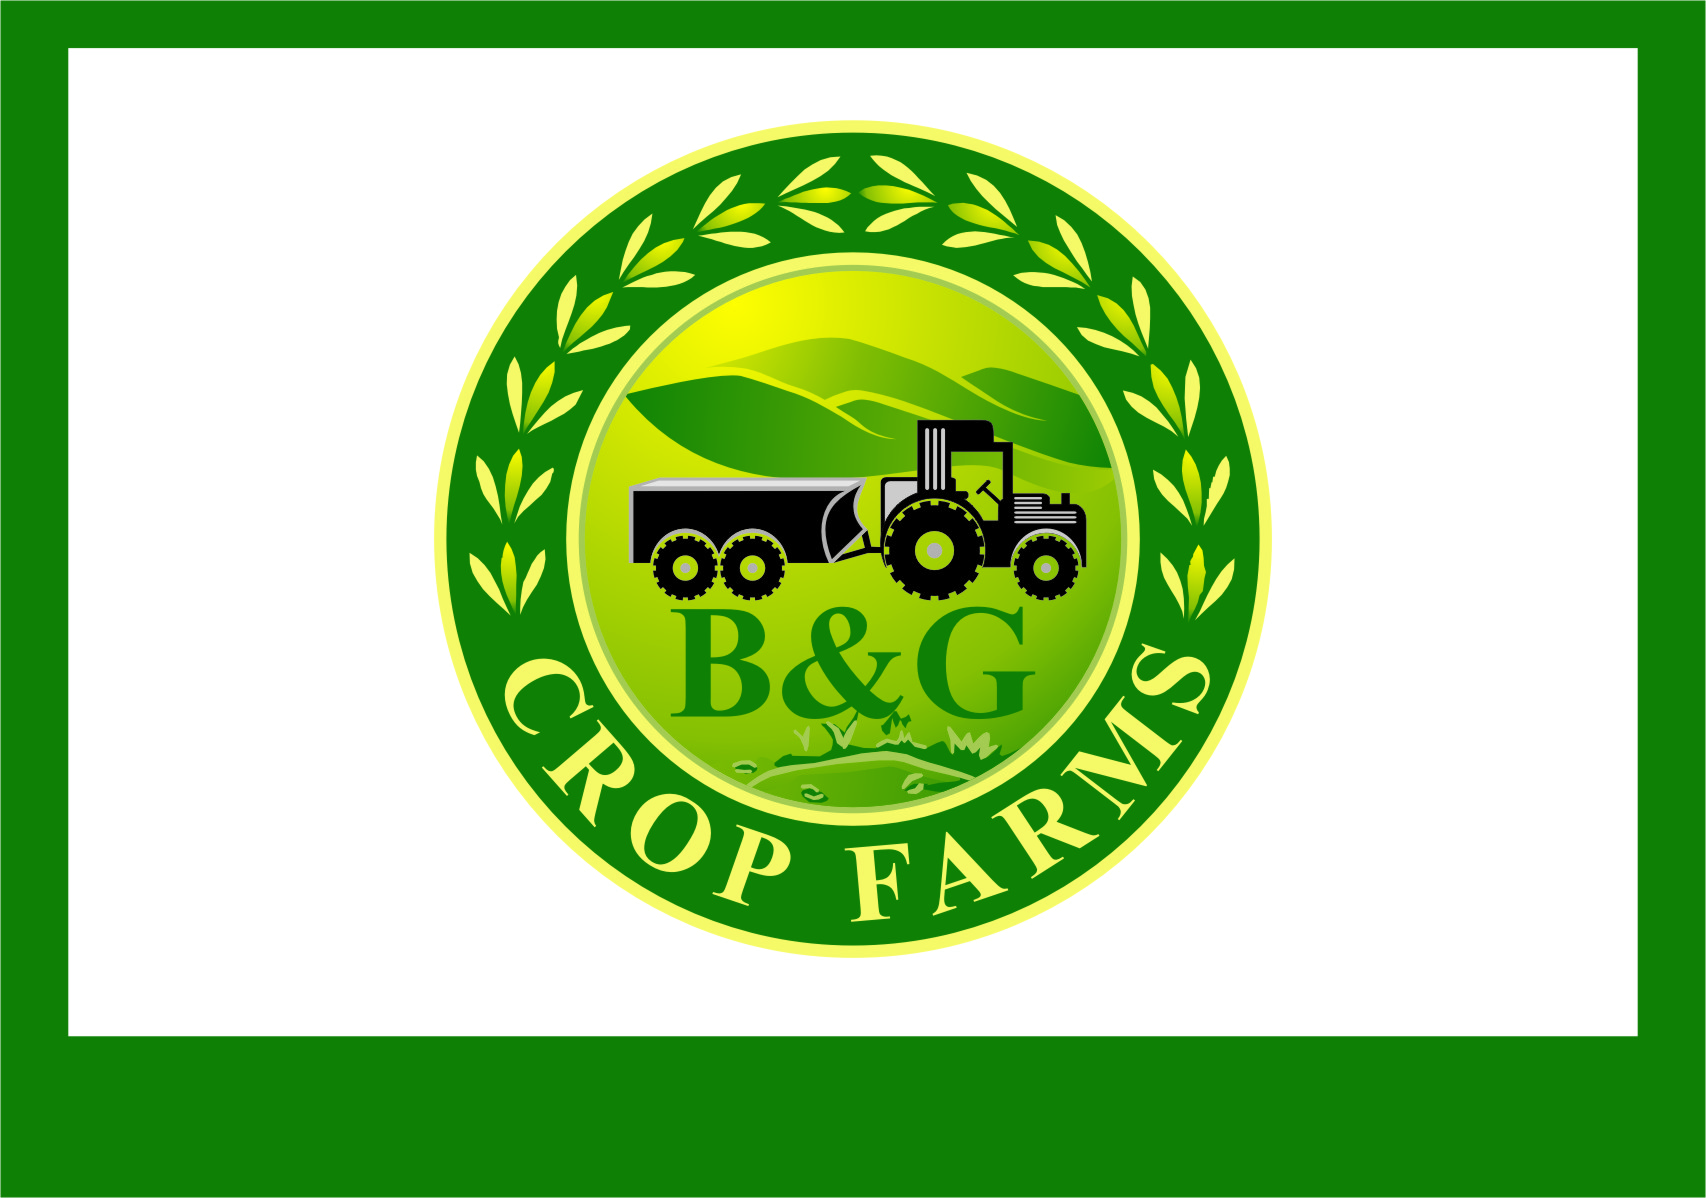 Logo Design by Ngepet_art - Entry No. 73 in the Logo Design Contest Artistic Logo Design for B & G Crop Farms.